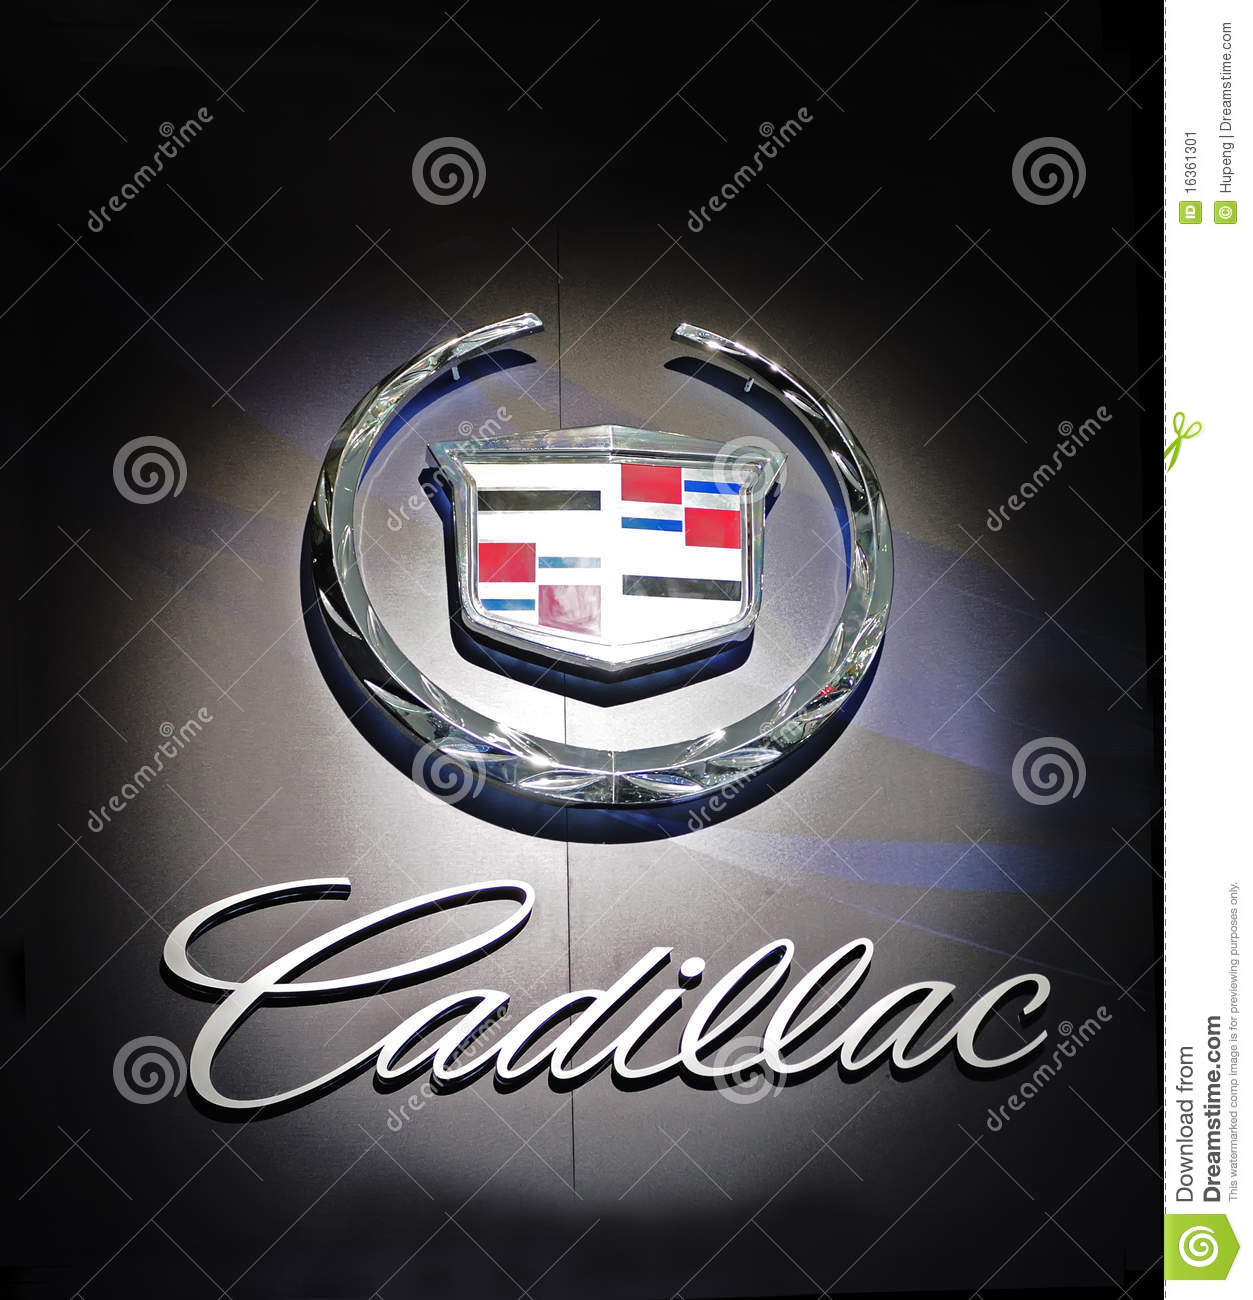 Cadillac Logo Editorial Photo Image Of Motorshow Luxury 16361301